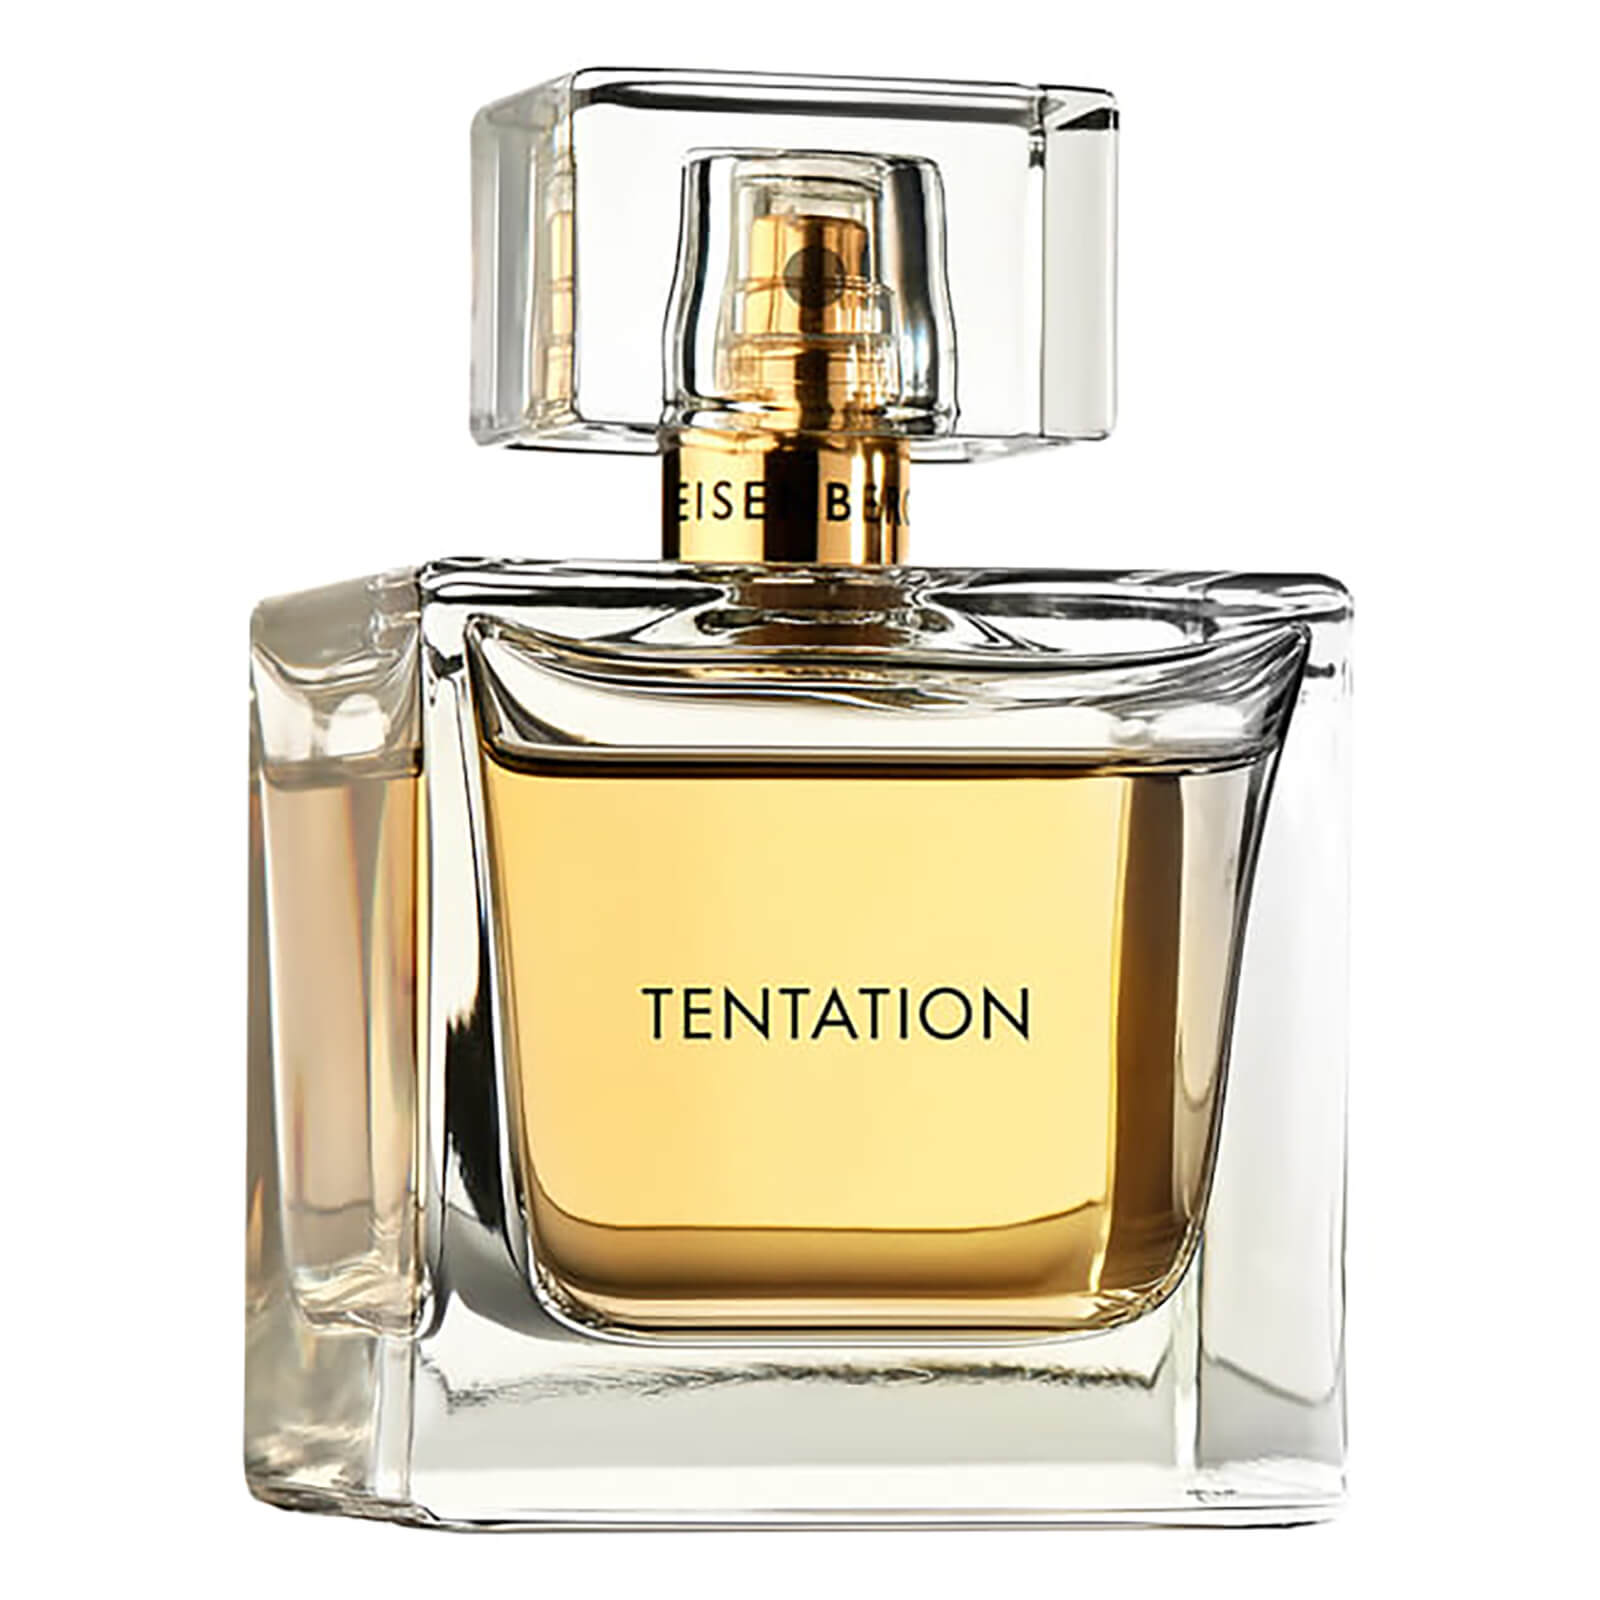 EISENBERG Tentation Eau de Parfum for Women 50ml